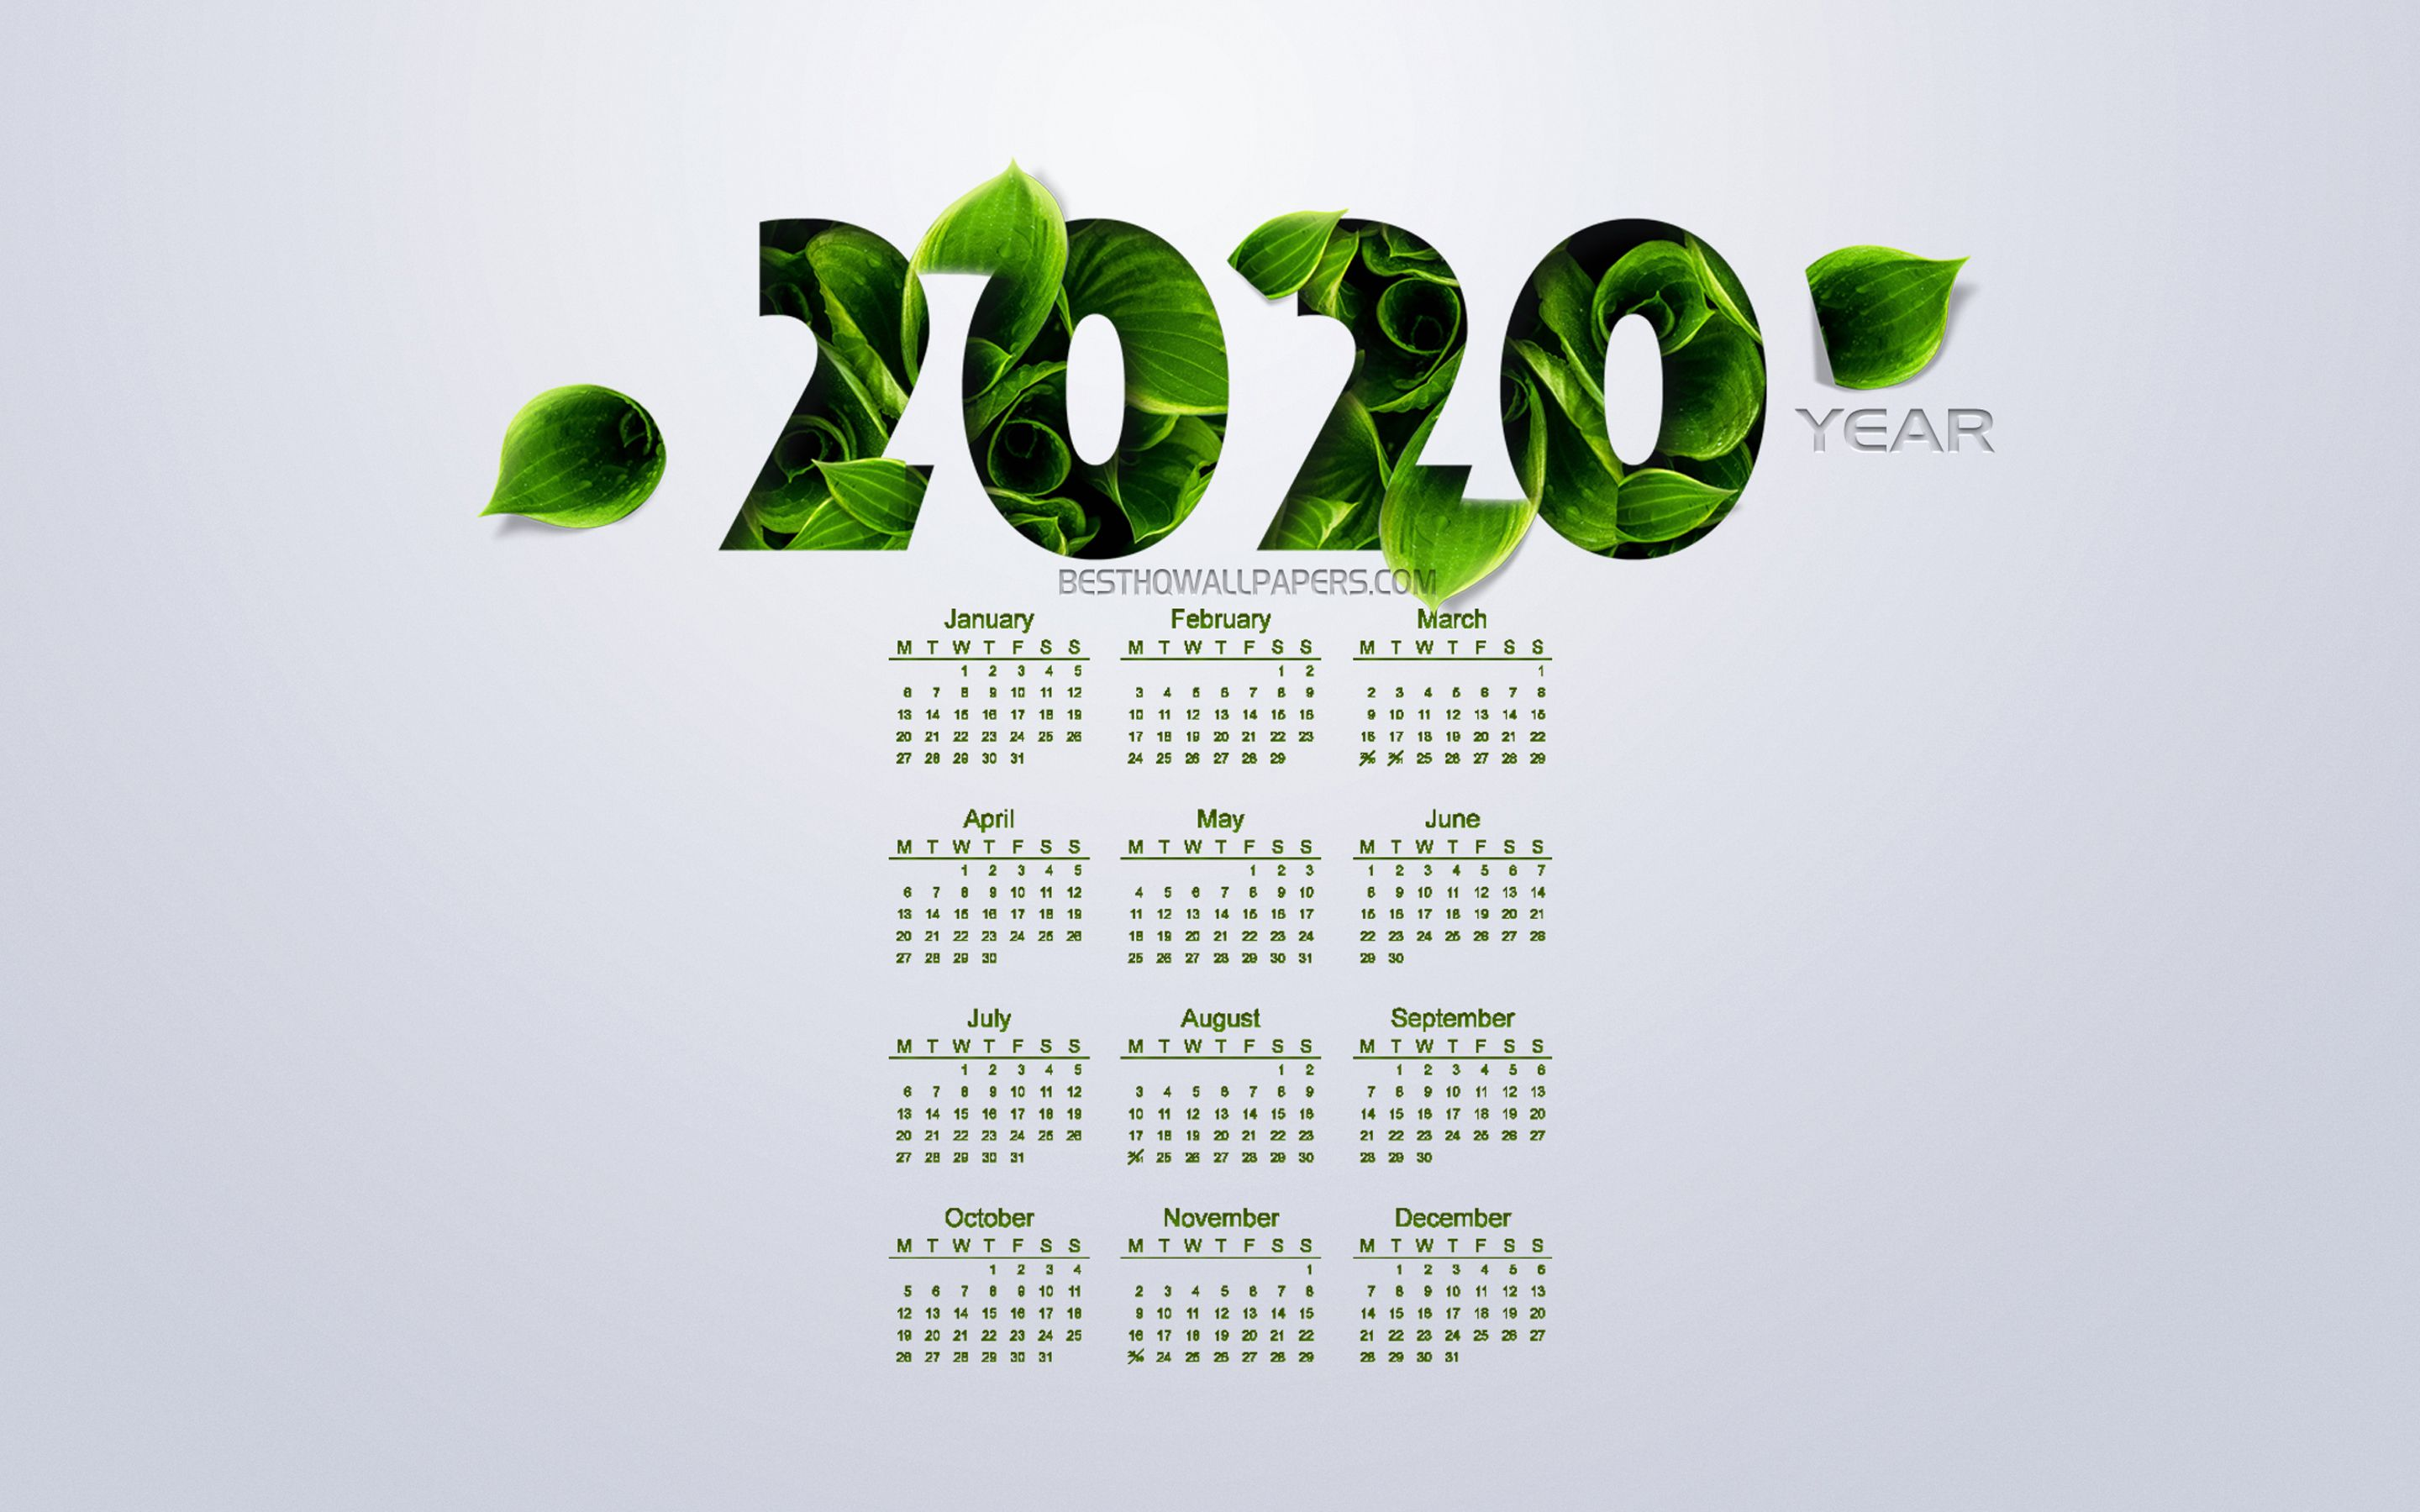 2020 Calendar Wallpapers   Top 2020 Calendar Backgrounds 2880x1800